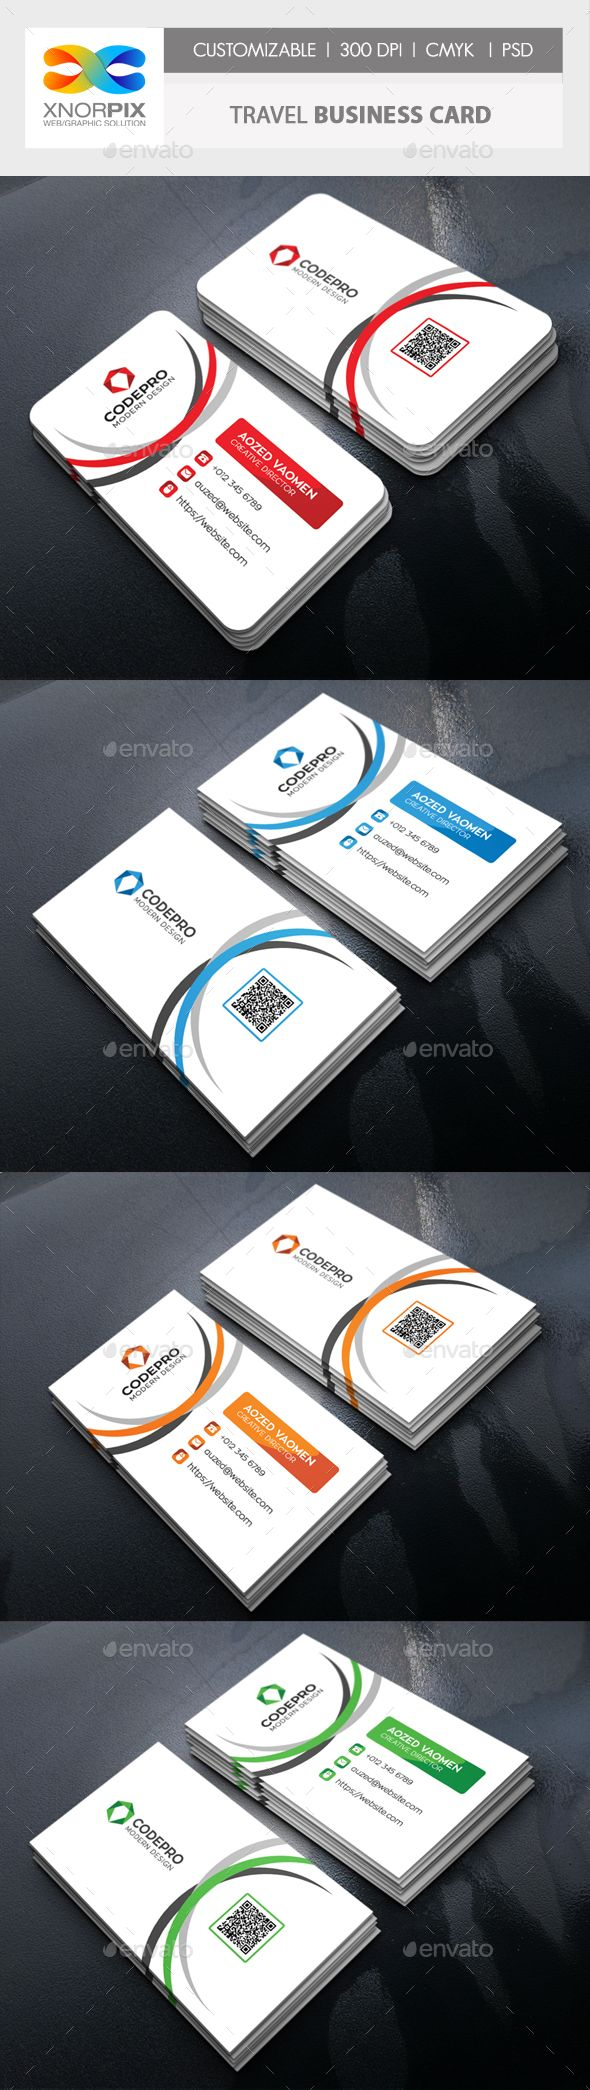 Travel #Business #Card - #Corporate Business Cards Download here:  https://graphicriver.net/item/travel-business-card/20446217?ref=alena994